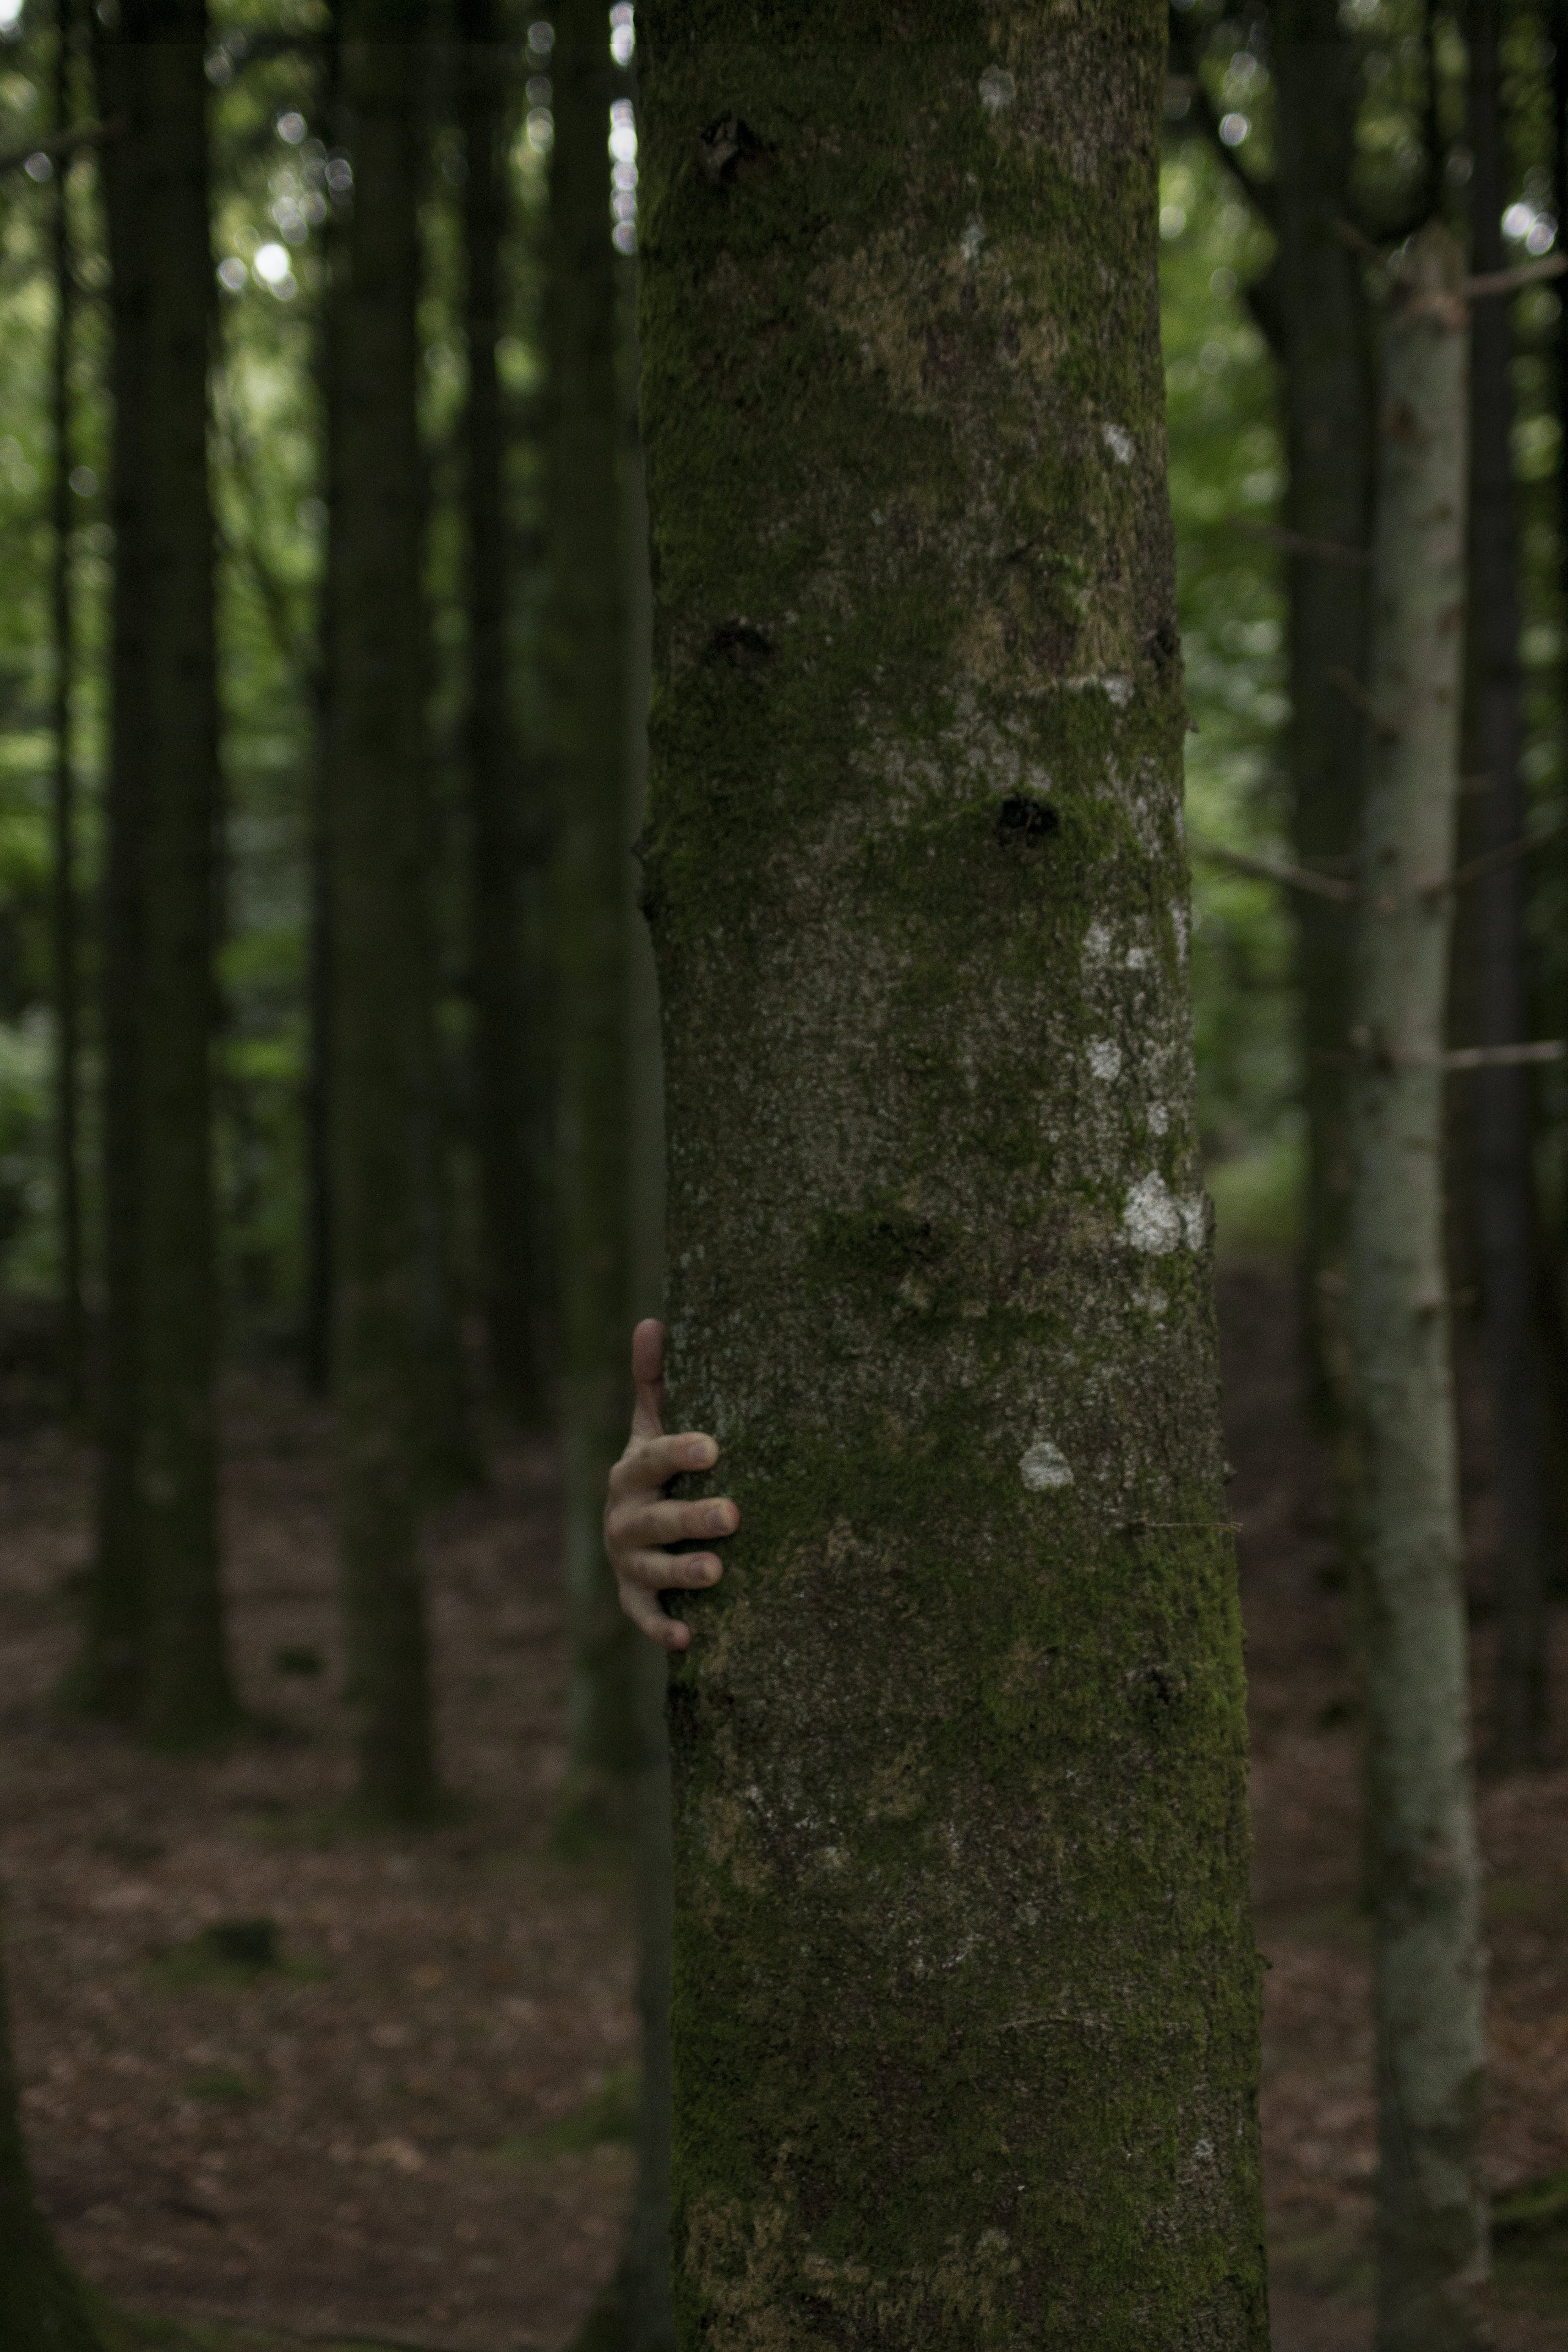 Person Hiding Behind Tree Trunk